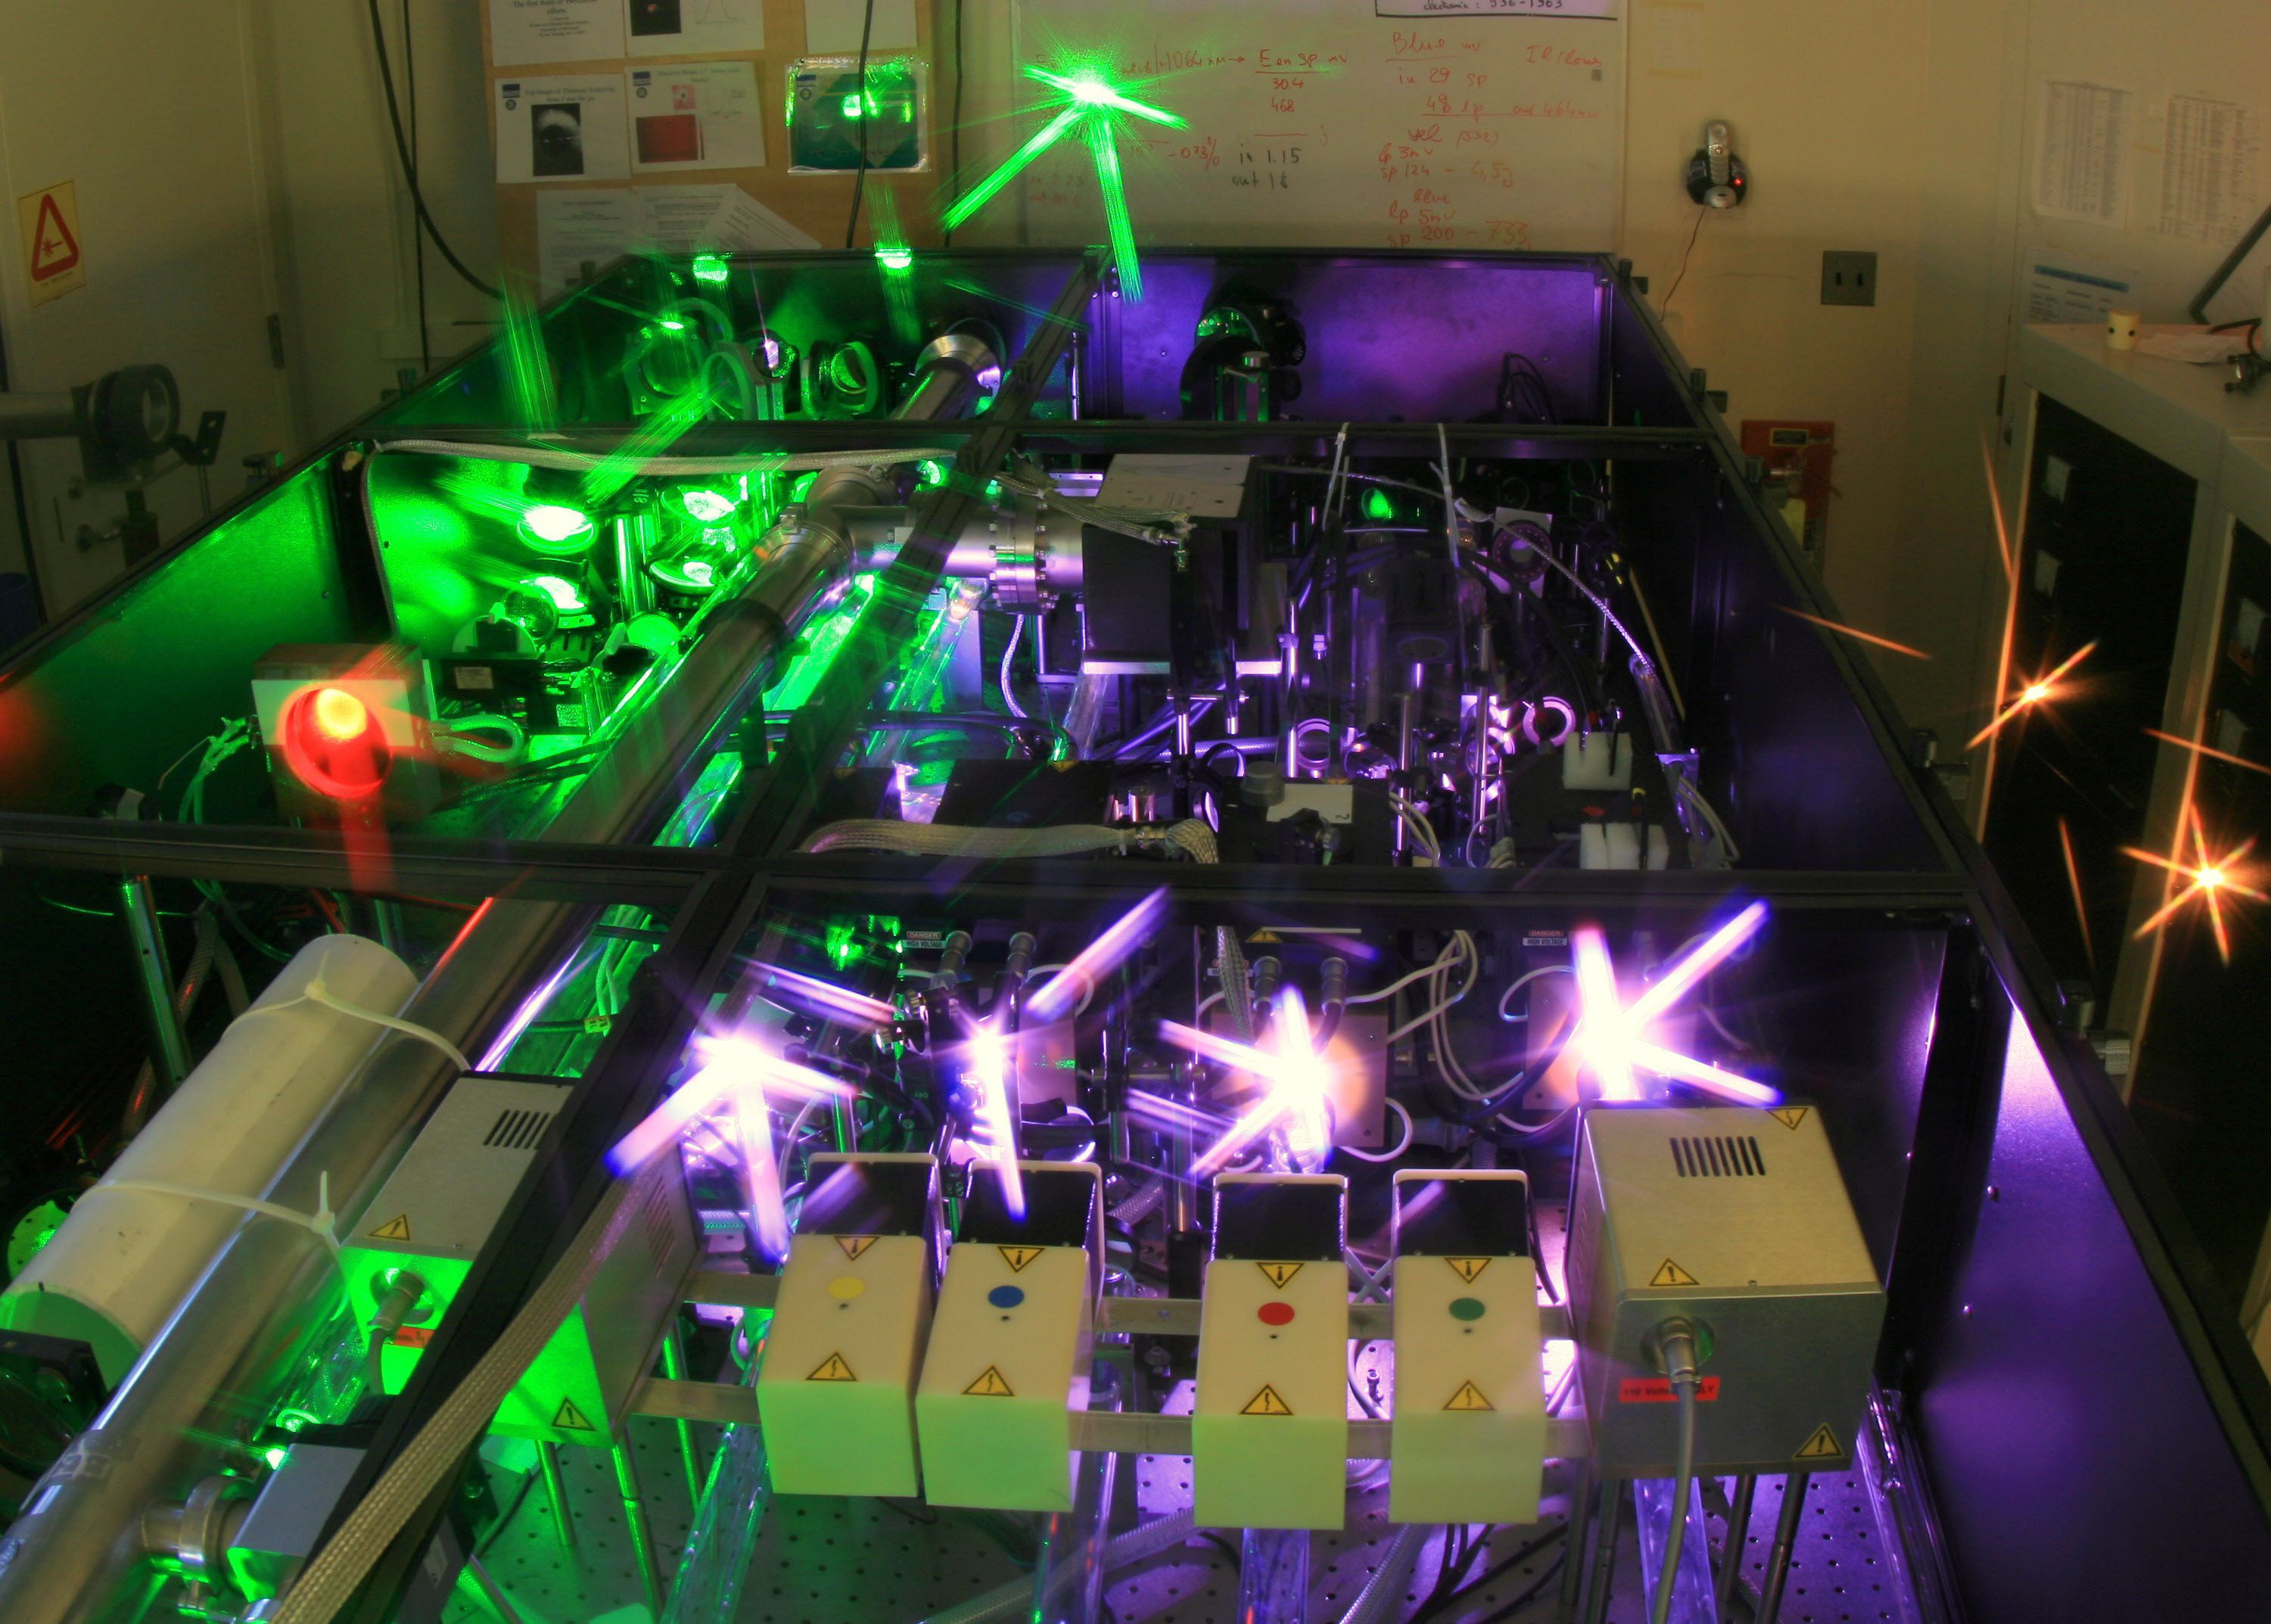 Fiver Optics Research Electonics Components Electonics Fiber Optics Fiber Optics Green Laser Science Gallery Science Images Science